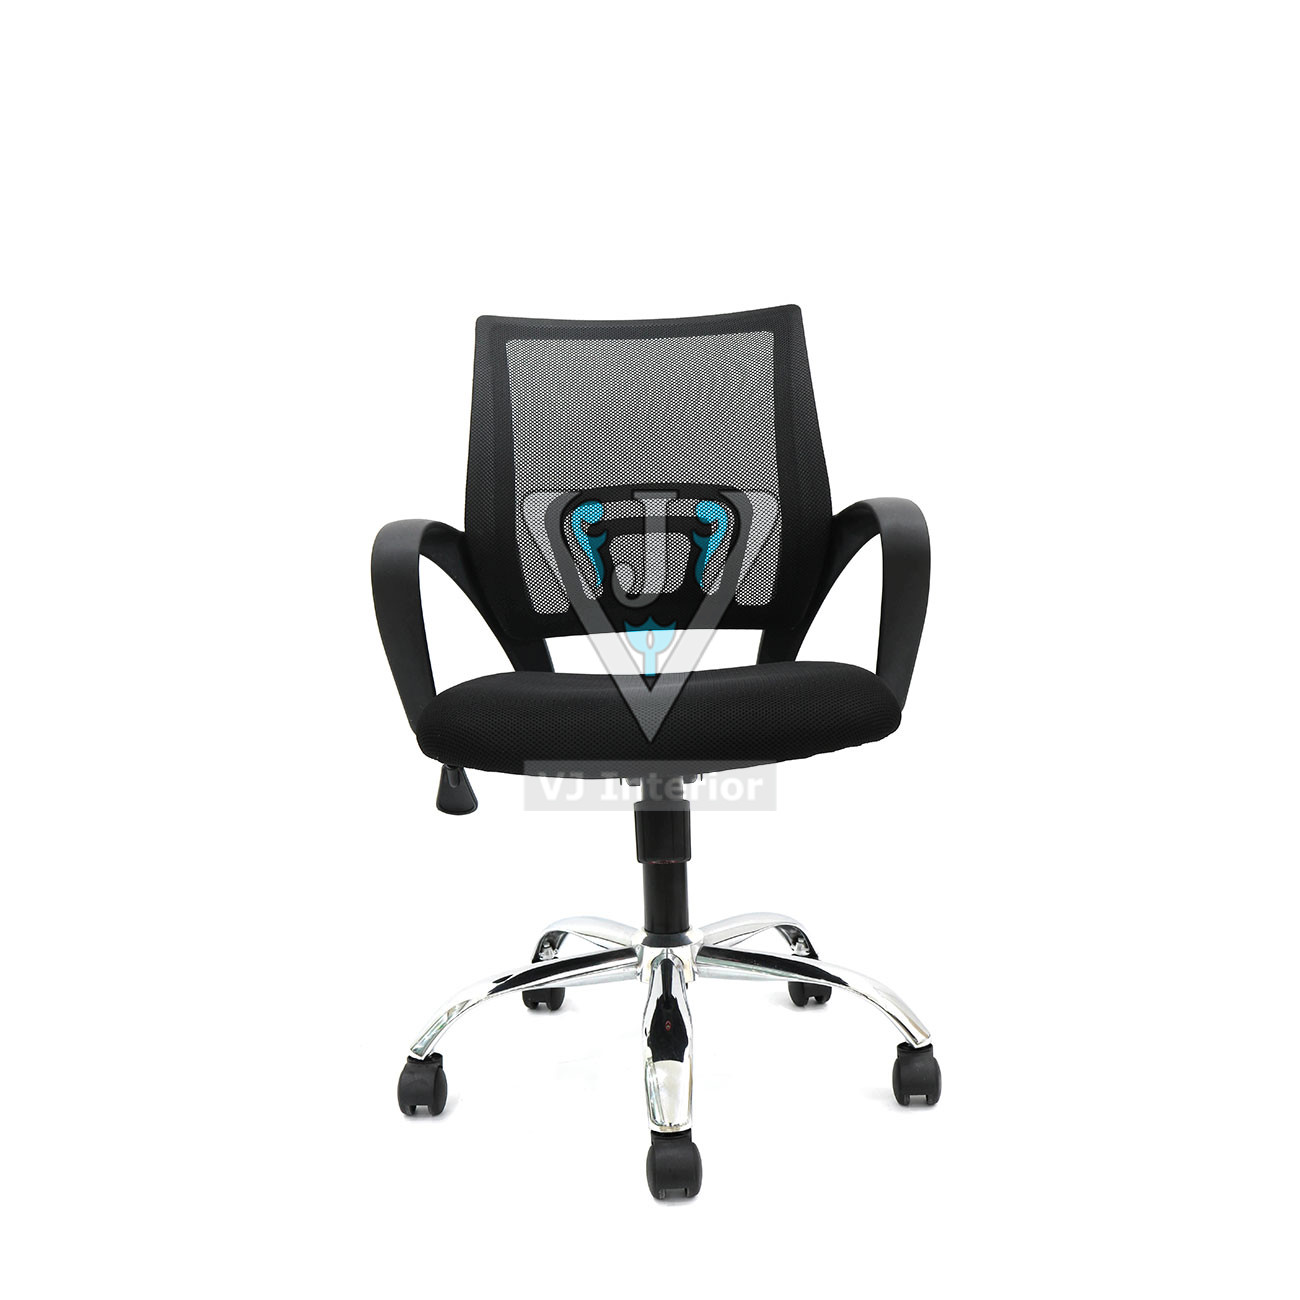 Executive task chair low back in black color the noven for Furniture zone near me